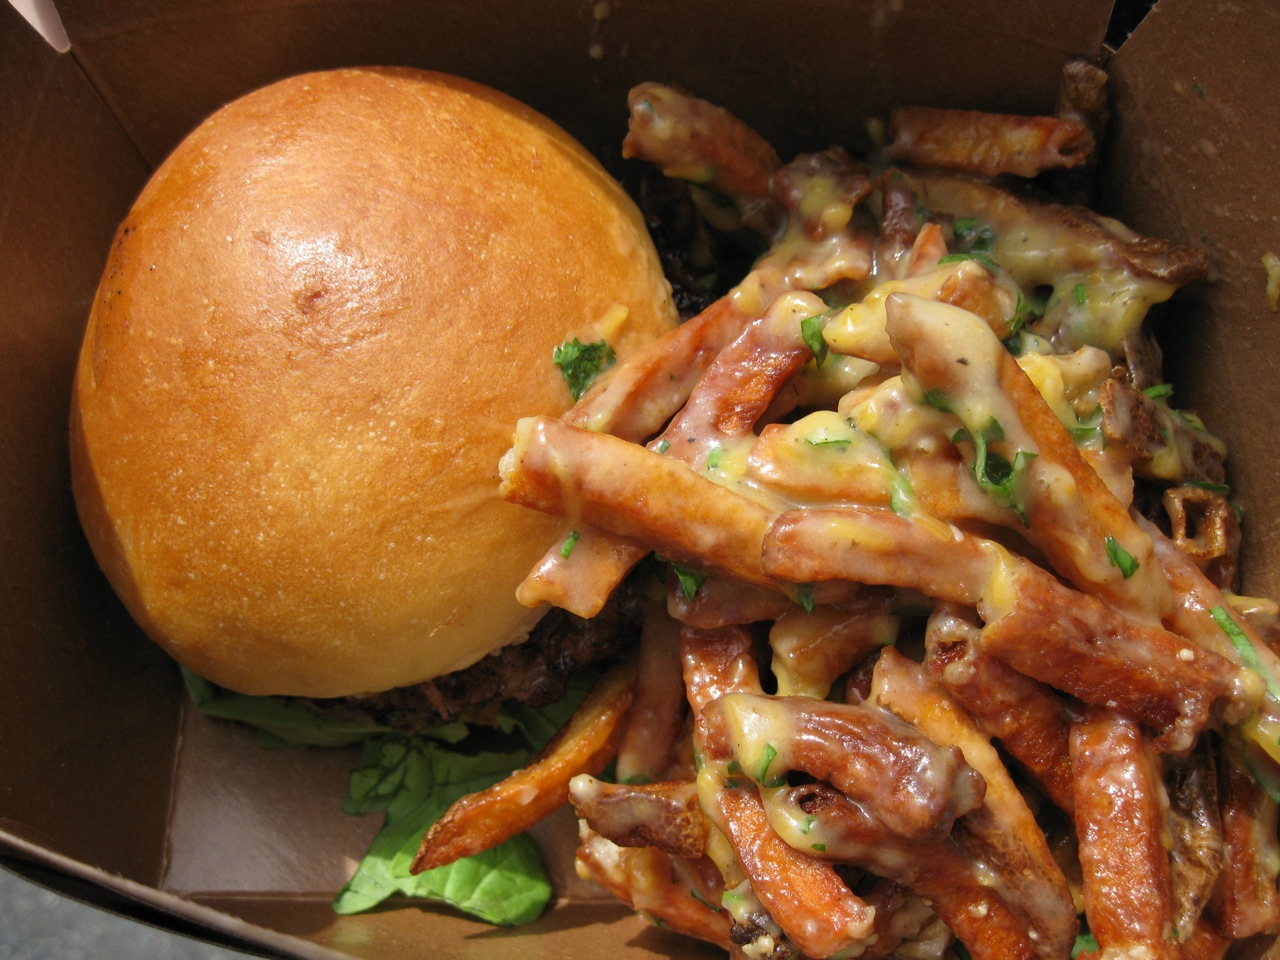 Burgers and Poutine